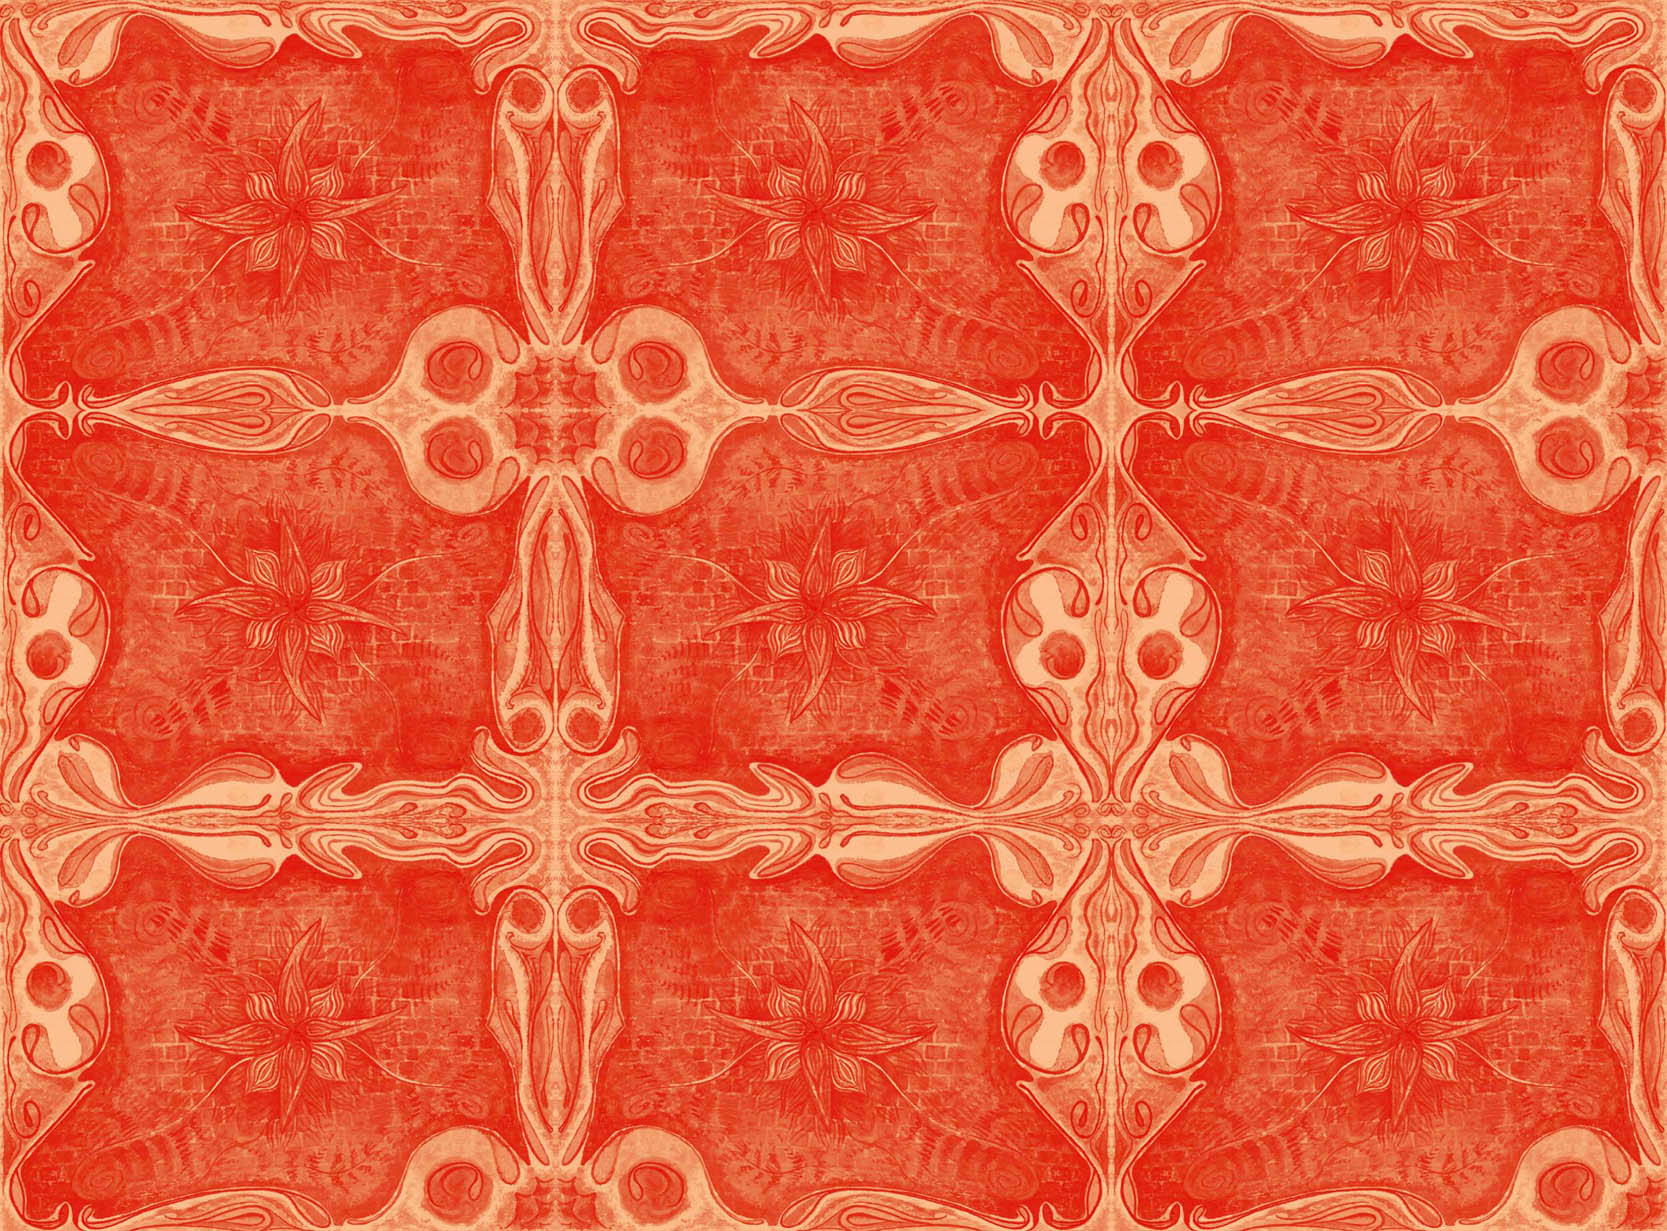 Color Project No. 13 is Cadmium Orange from Old Holland. PR108. Cadmium is what eventually replaced vermillion. It was less costly, less toxic and does not revert to black when exposed to light. We are lucky to have it. I am afraid that this digital collage looks a bit redder than the actual painting. Sometimes it is just impossible to get it to look the same on the screen. What can I say? But I like the texture of this tiled pattern and the color. It is totally an accident that I just made an orange painting so close to Halloween.